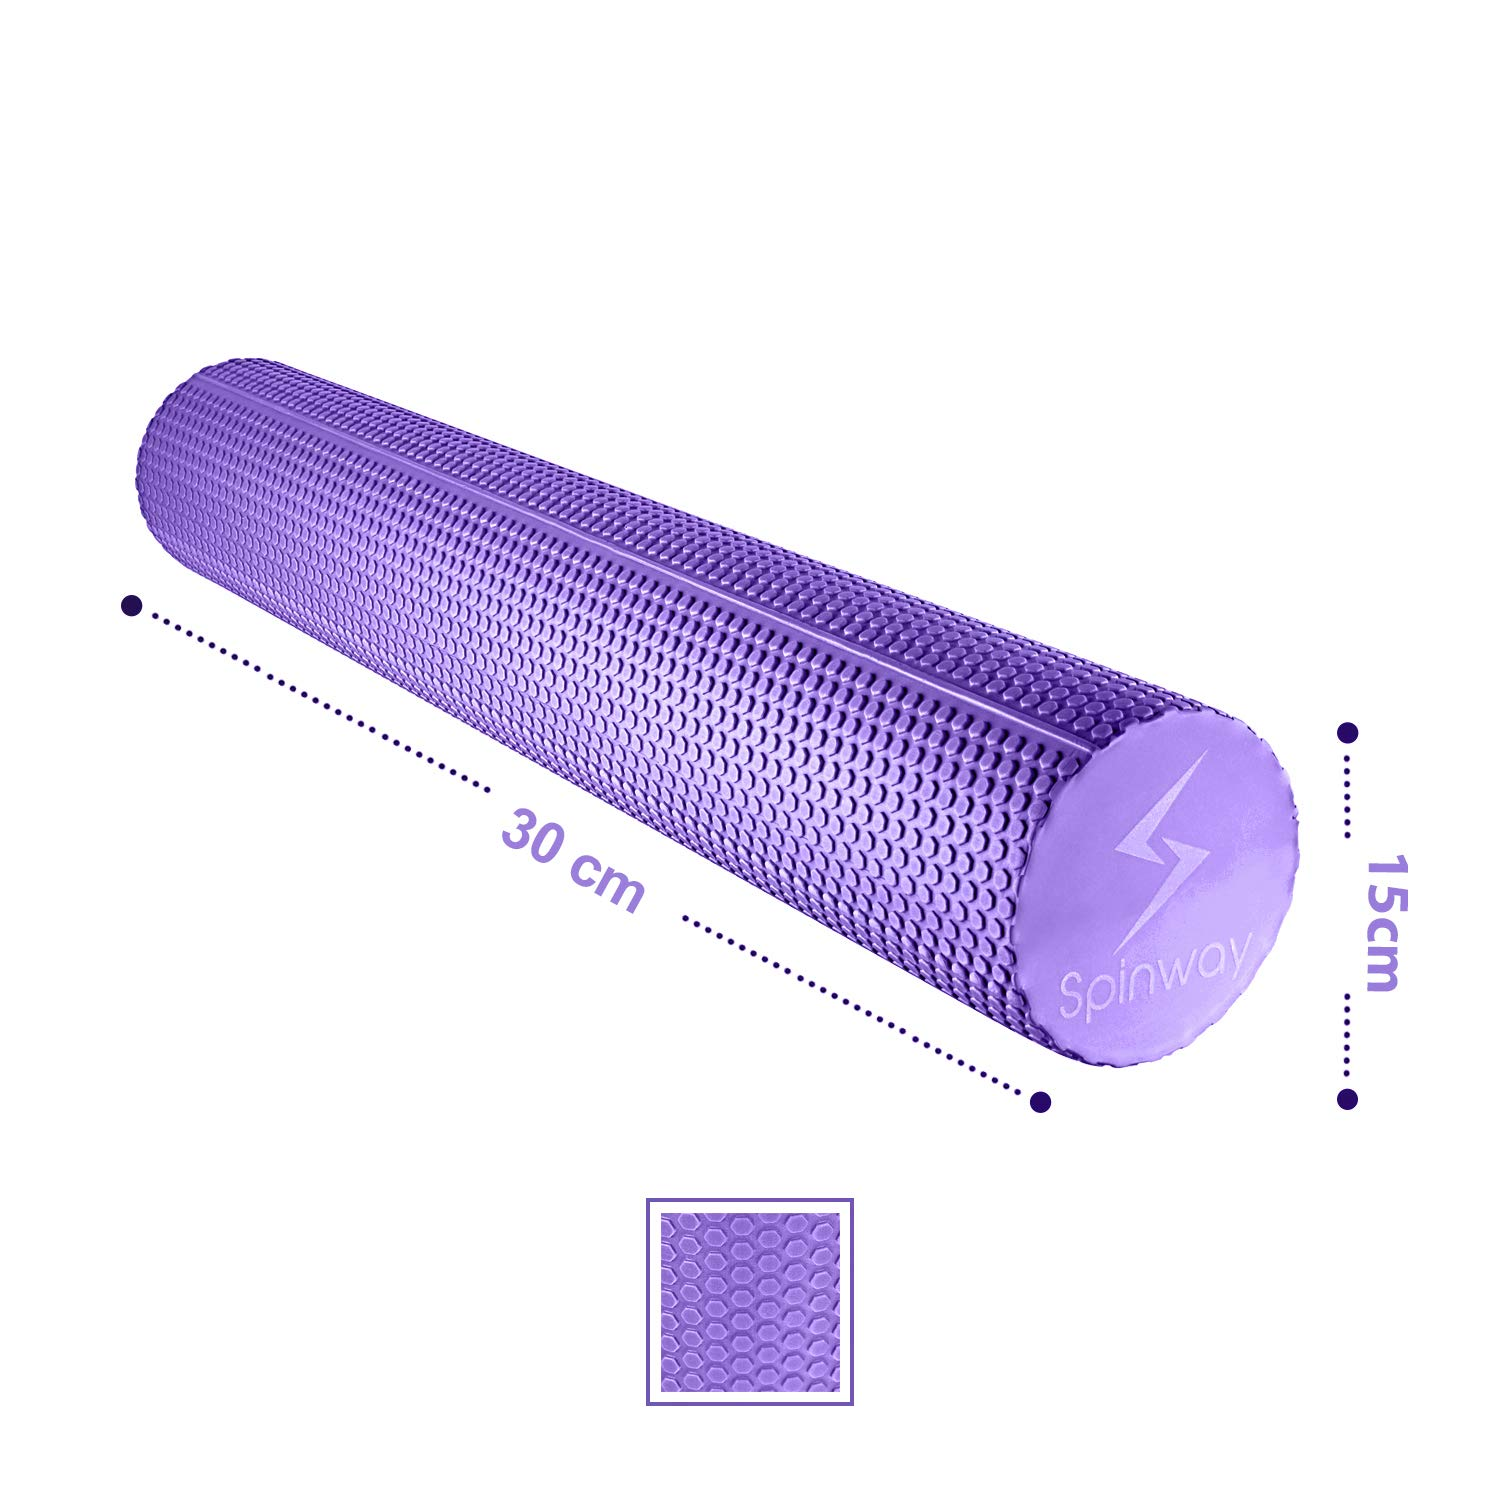 spinway Yoga Foam Roller Speckled Foam Rollers for Muscles Extra Firm High Density for Physical Therapy Exercise Deep Tissue Muscle Massage (Purple) by spinway (Image #3)